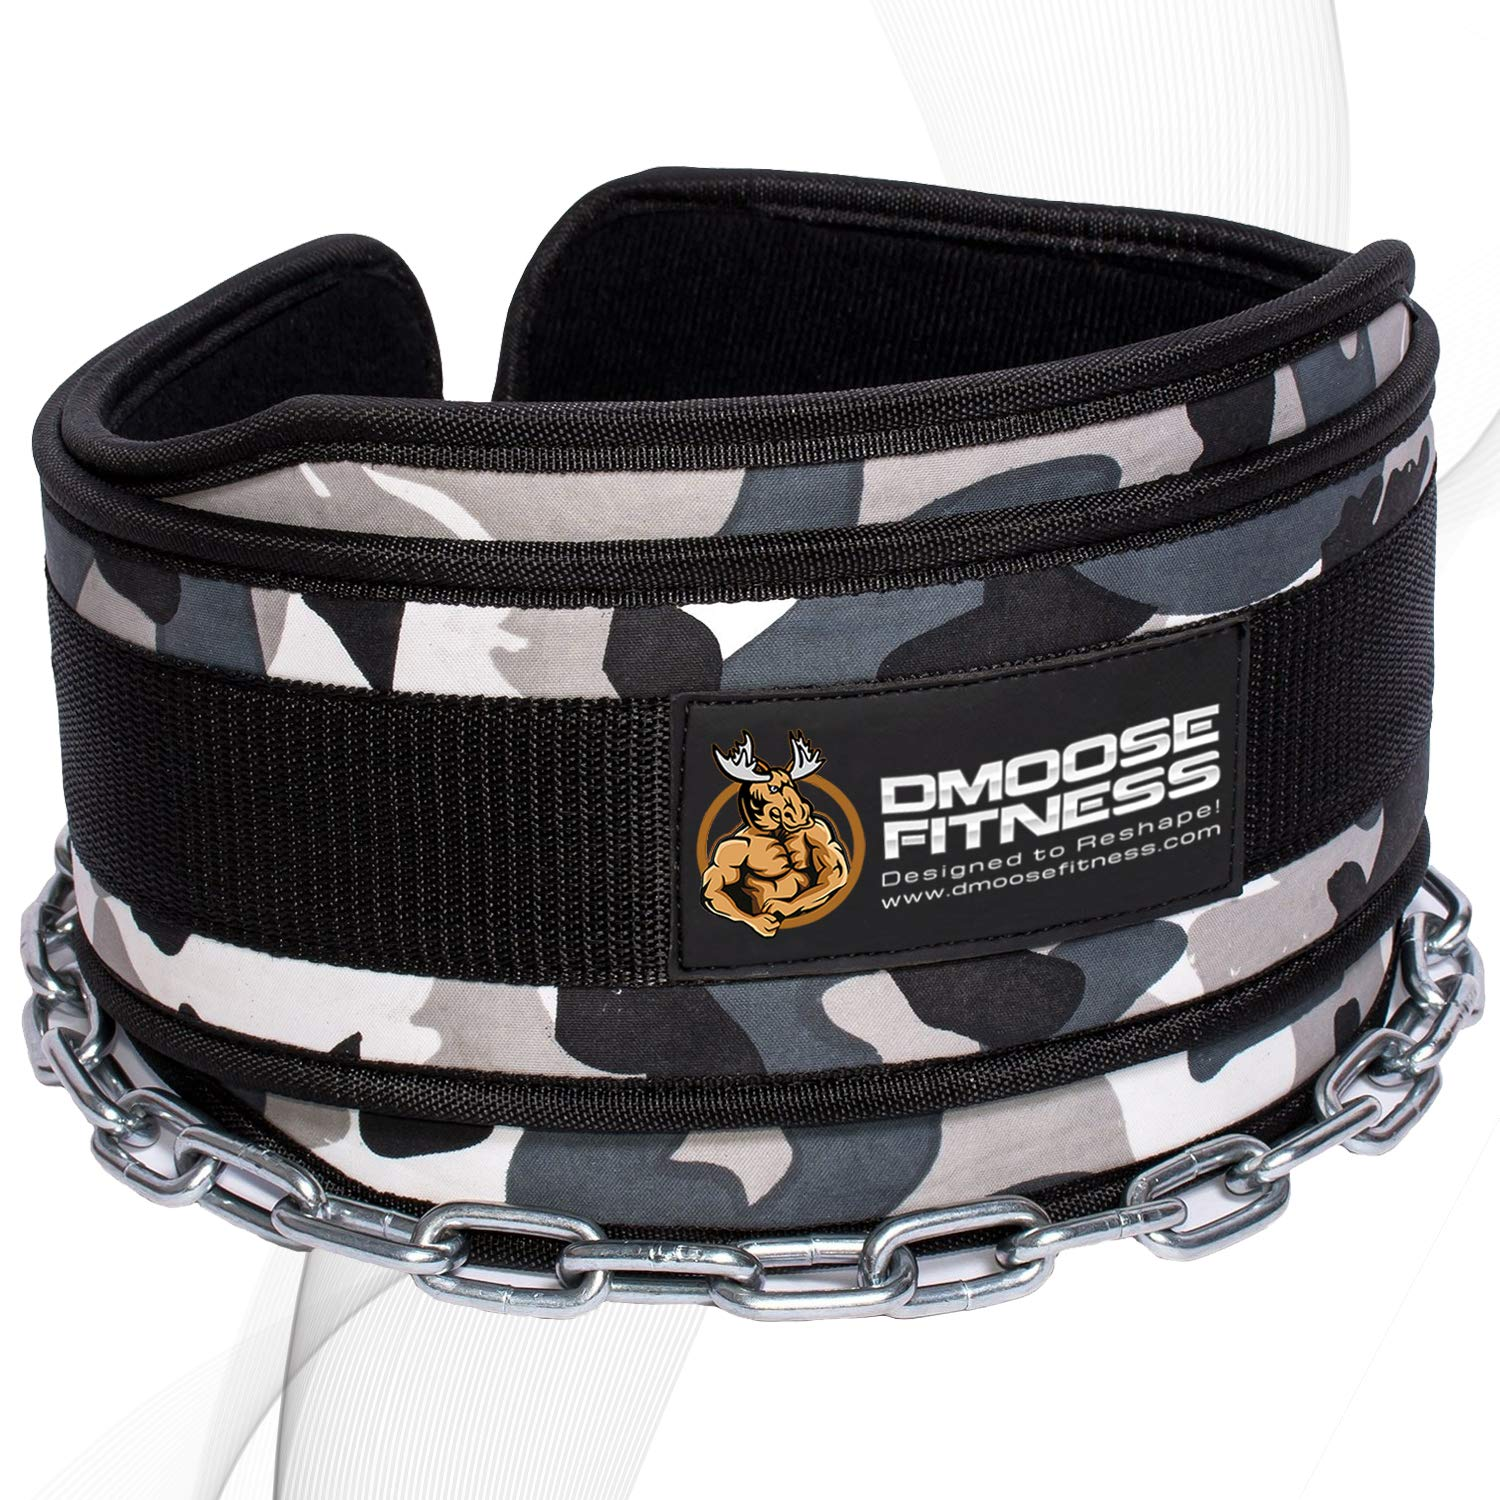 DMoose Fitness Premium Dip Belt with Chain - 36'' Heavy Duty Steel Chain, Comfort Fit Neoprene, Double Stitching - Maximize Your Weightlifting & Bodybuilding Workouts ...